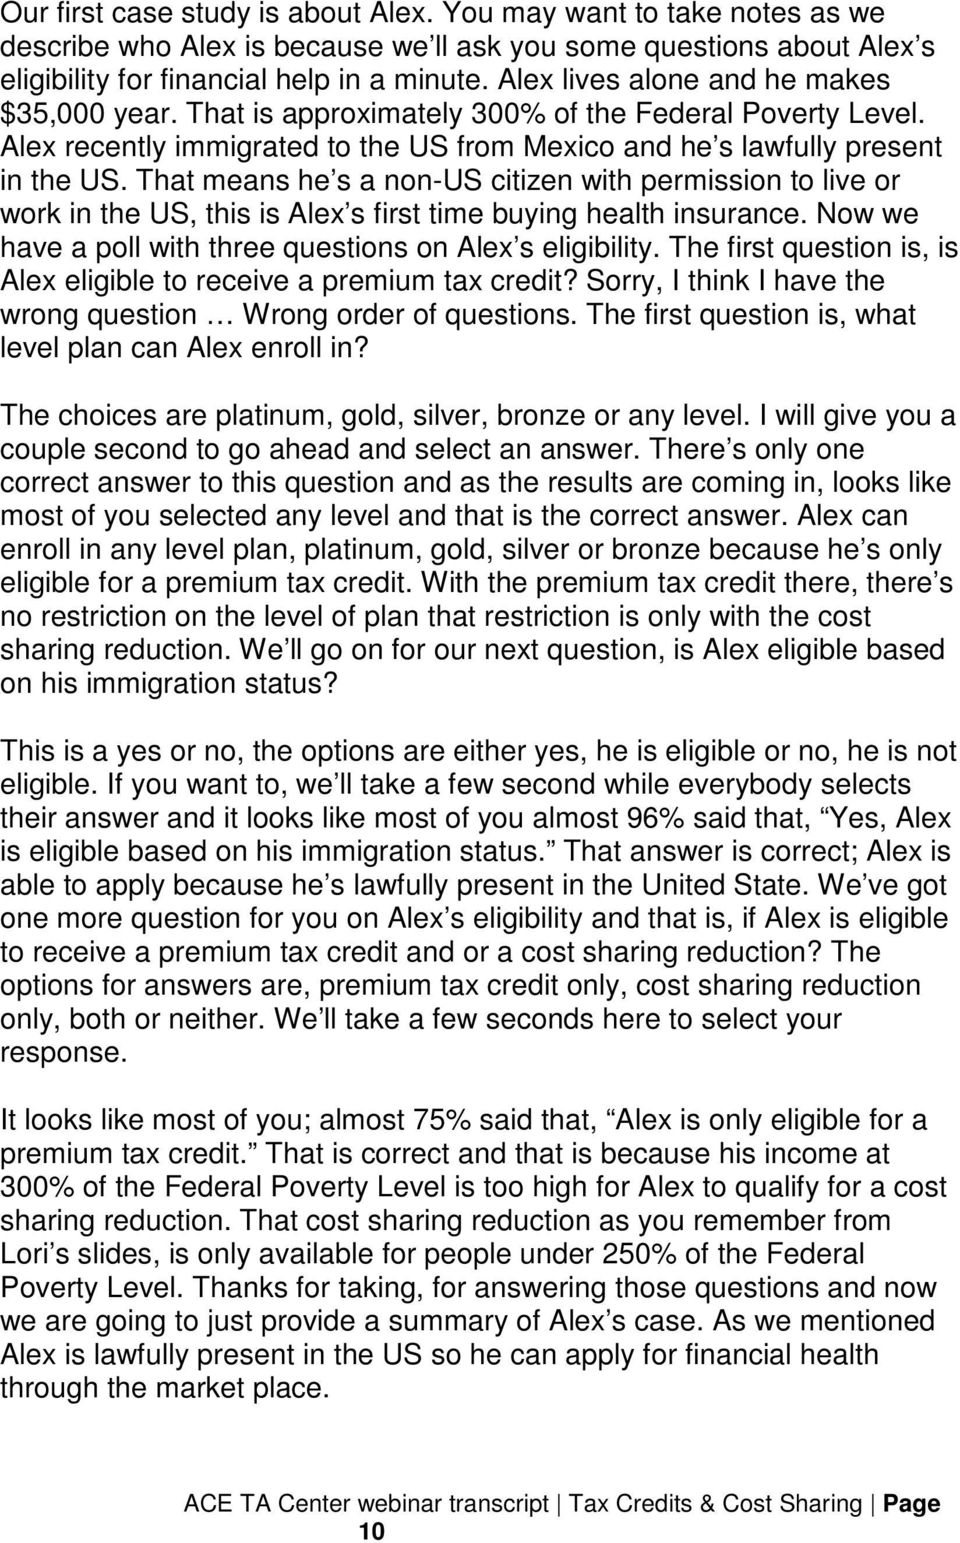 That means he s a non-us citizen with permission to live or work in the US, this is Alex s first time buying health insurance. Now we have a poll with three questions on Alex s eligibility.